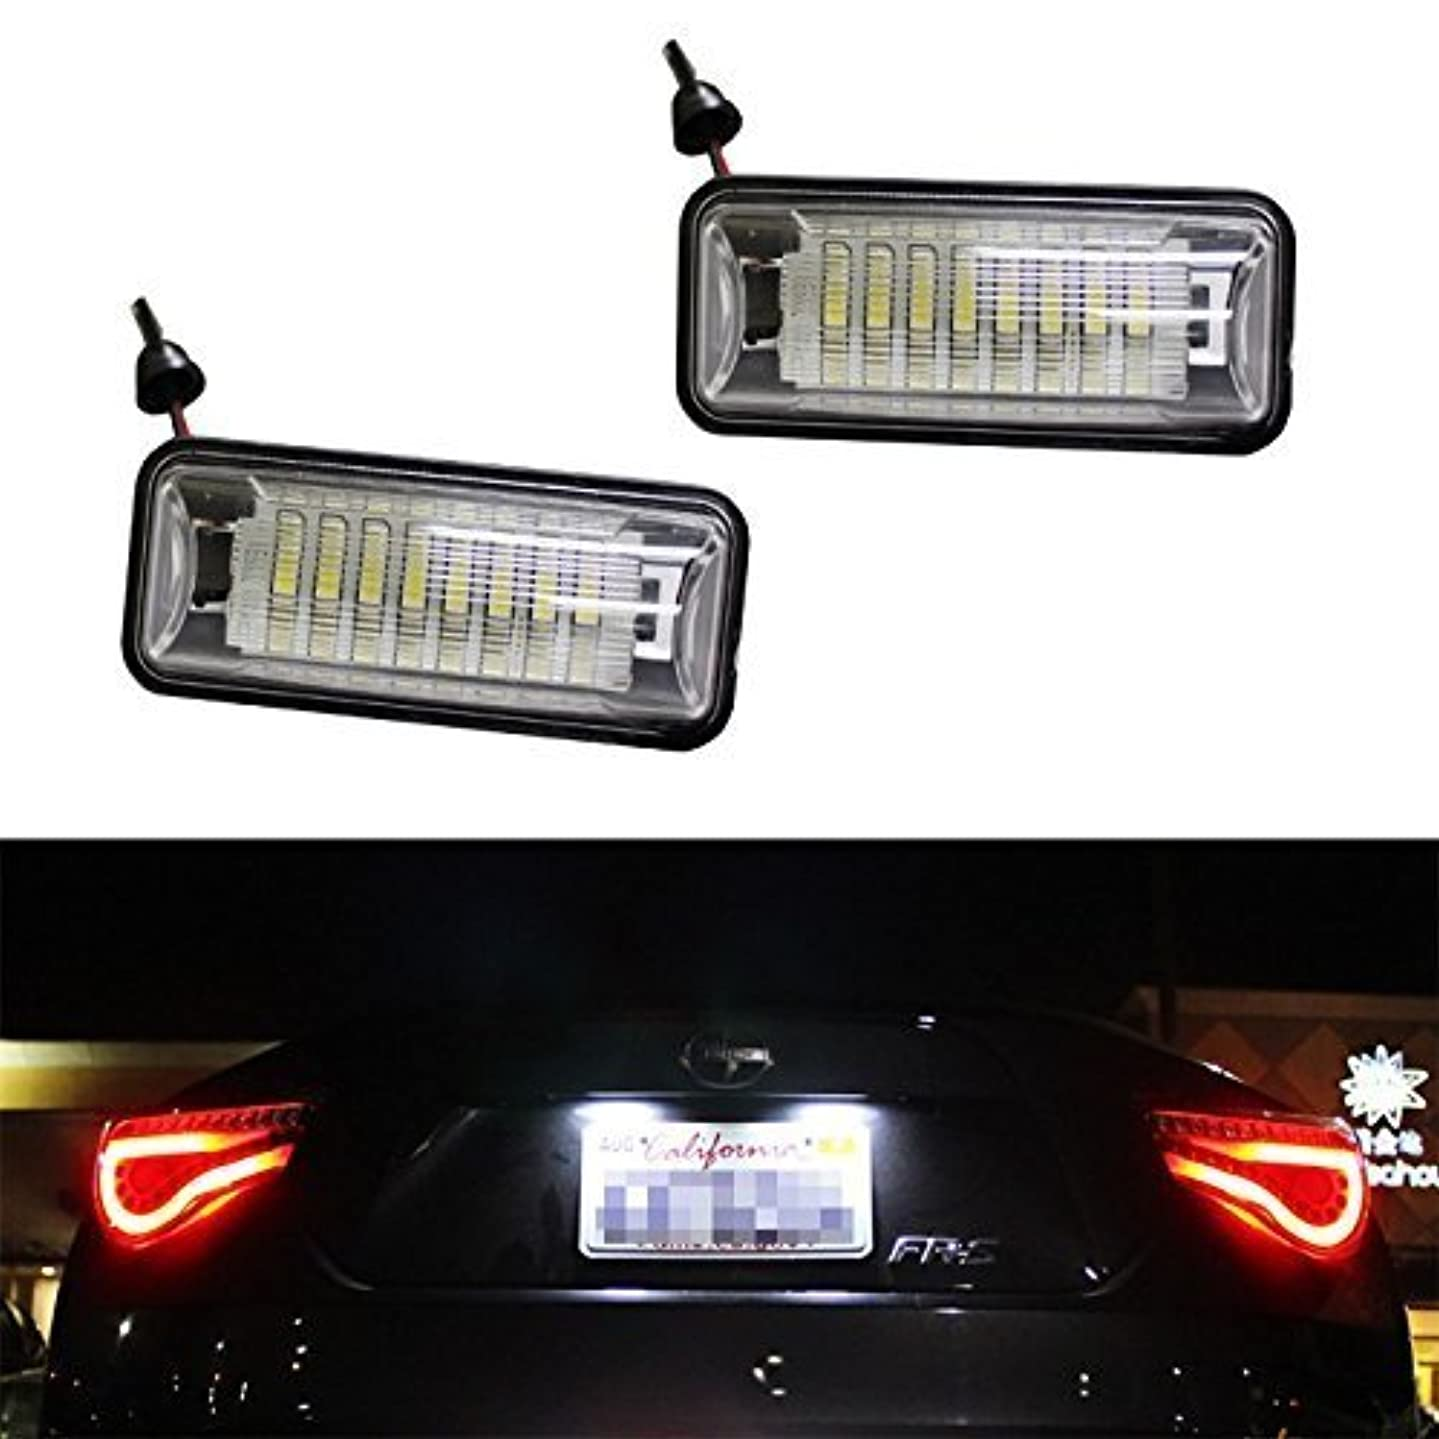 DLLL Replacement Super Bright 24-SMD OEM White Exact Fit CAN-bus 24 SMD LED License Plate Light Lamps for Scion FRS Subaru BRZ Toyota FT86 2012-up Toyota 86 GT-86(NC6)